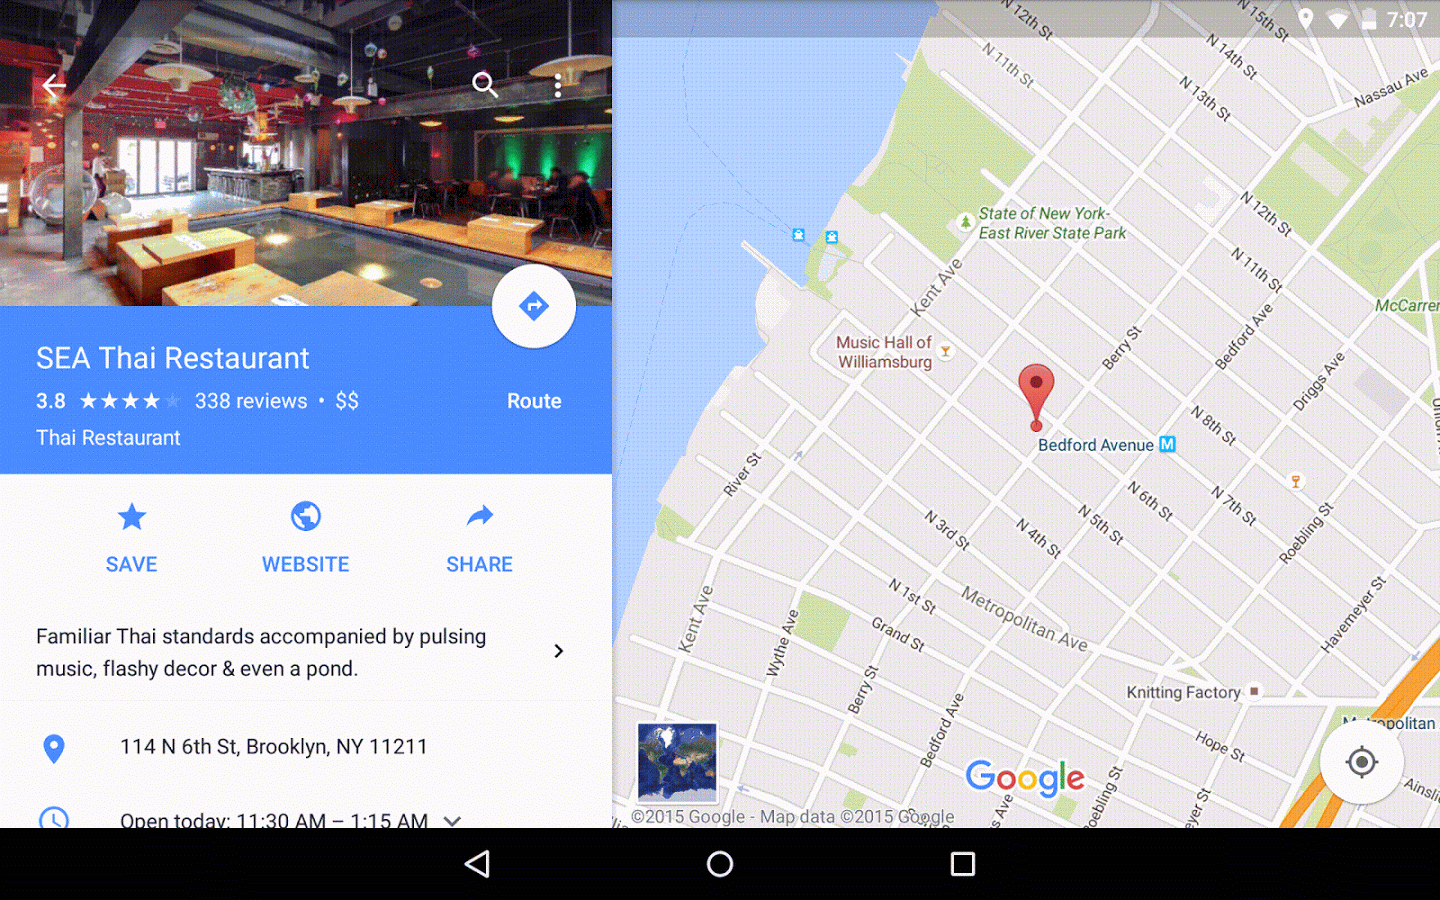 Google Maps for Android 10.12.2 free download - ... on google bookmarks android, onedrive android, google analytics android, google map san francisco bay, google map example, social networking apps android, baidu maps android, google notes android, google calendar app for windows 8, google voice android, google search bar android, chromebook android, google marketplace android, downloadable maps for android, google chrome browser android, ical android, total commander android, google groups android, google talk android, windows media player android,